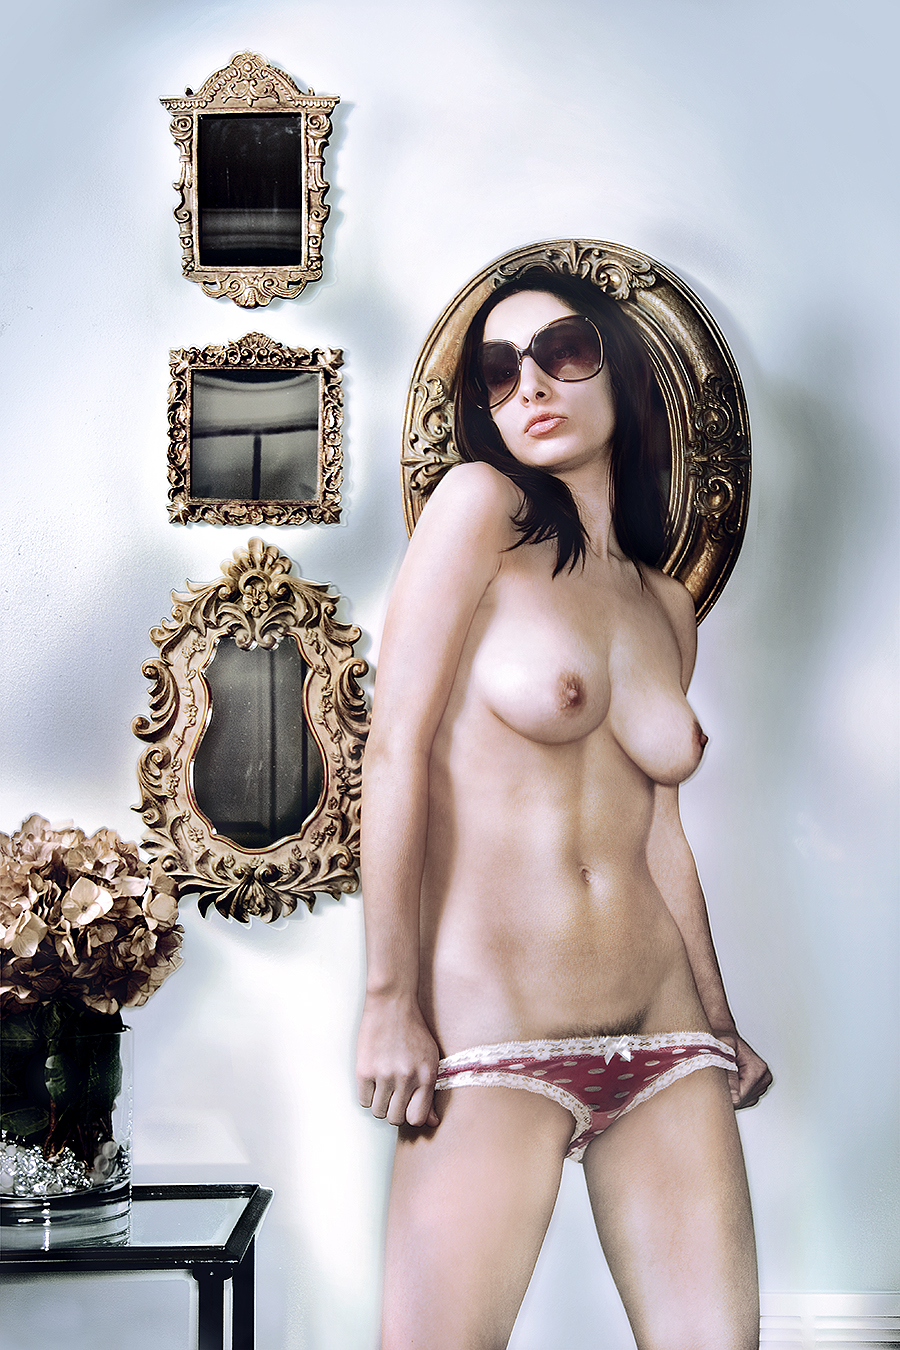 Tony_Ward_Studio_fashion_photography_Model_isabella_Reneaux_nudes_nudity_erotica_fashion_lingerie_unshaven_sunglasses_underwear